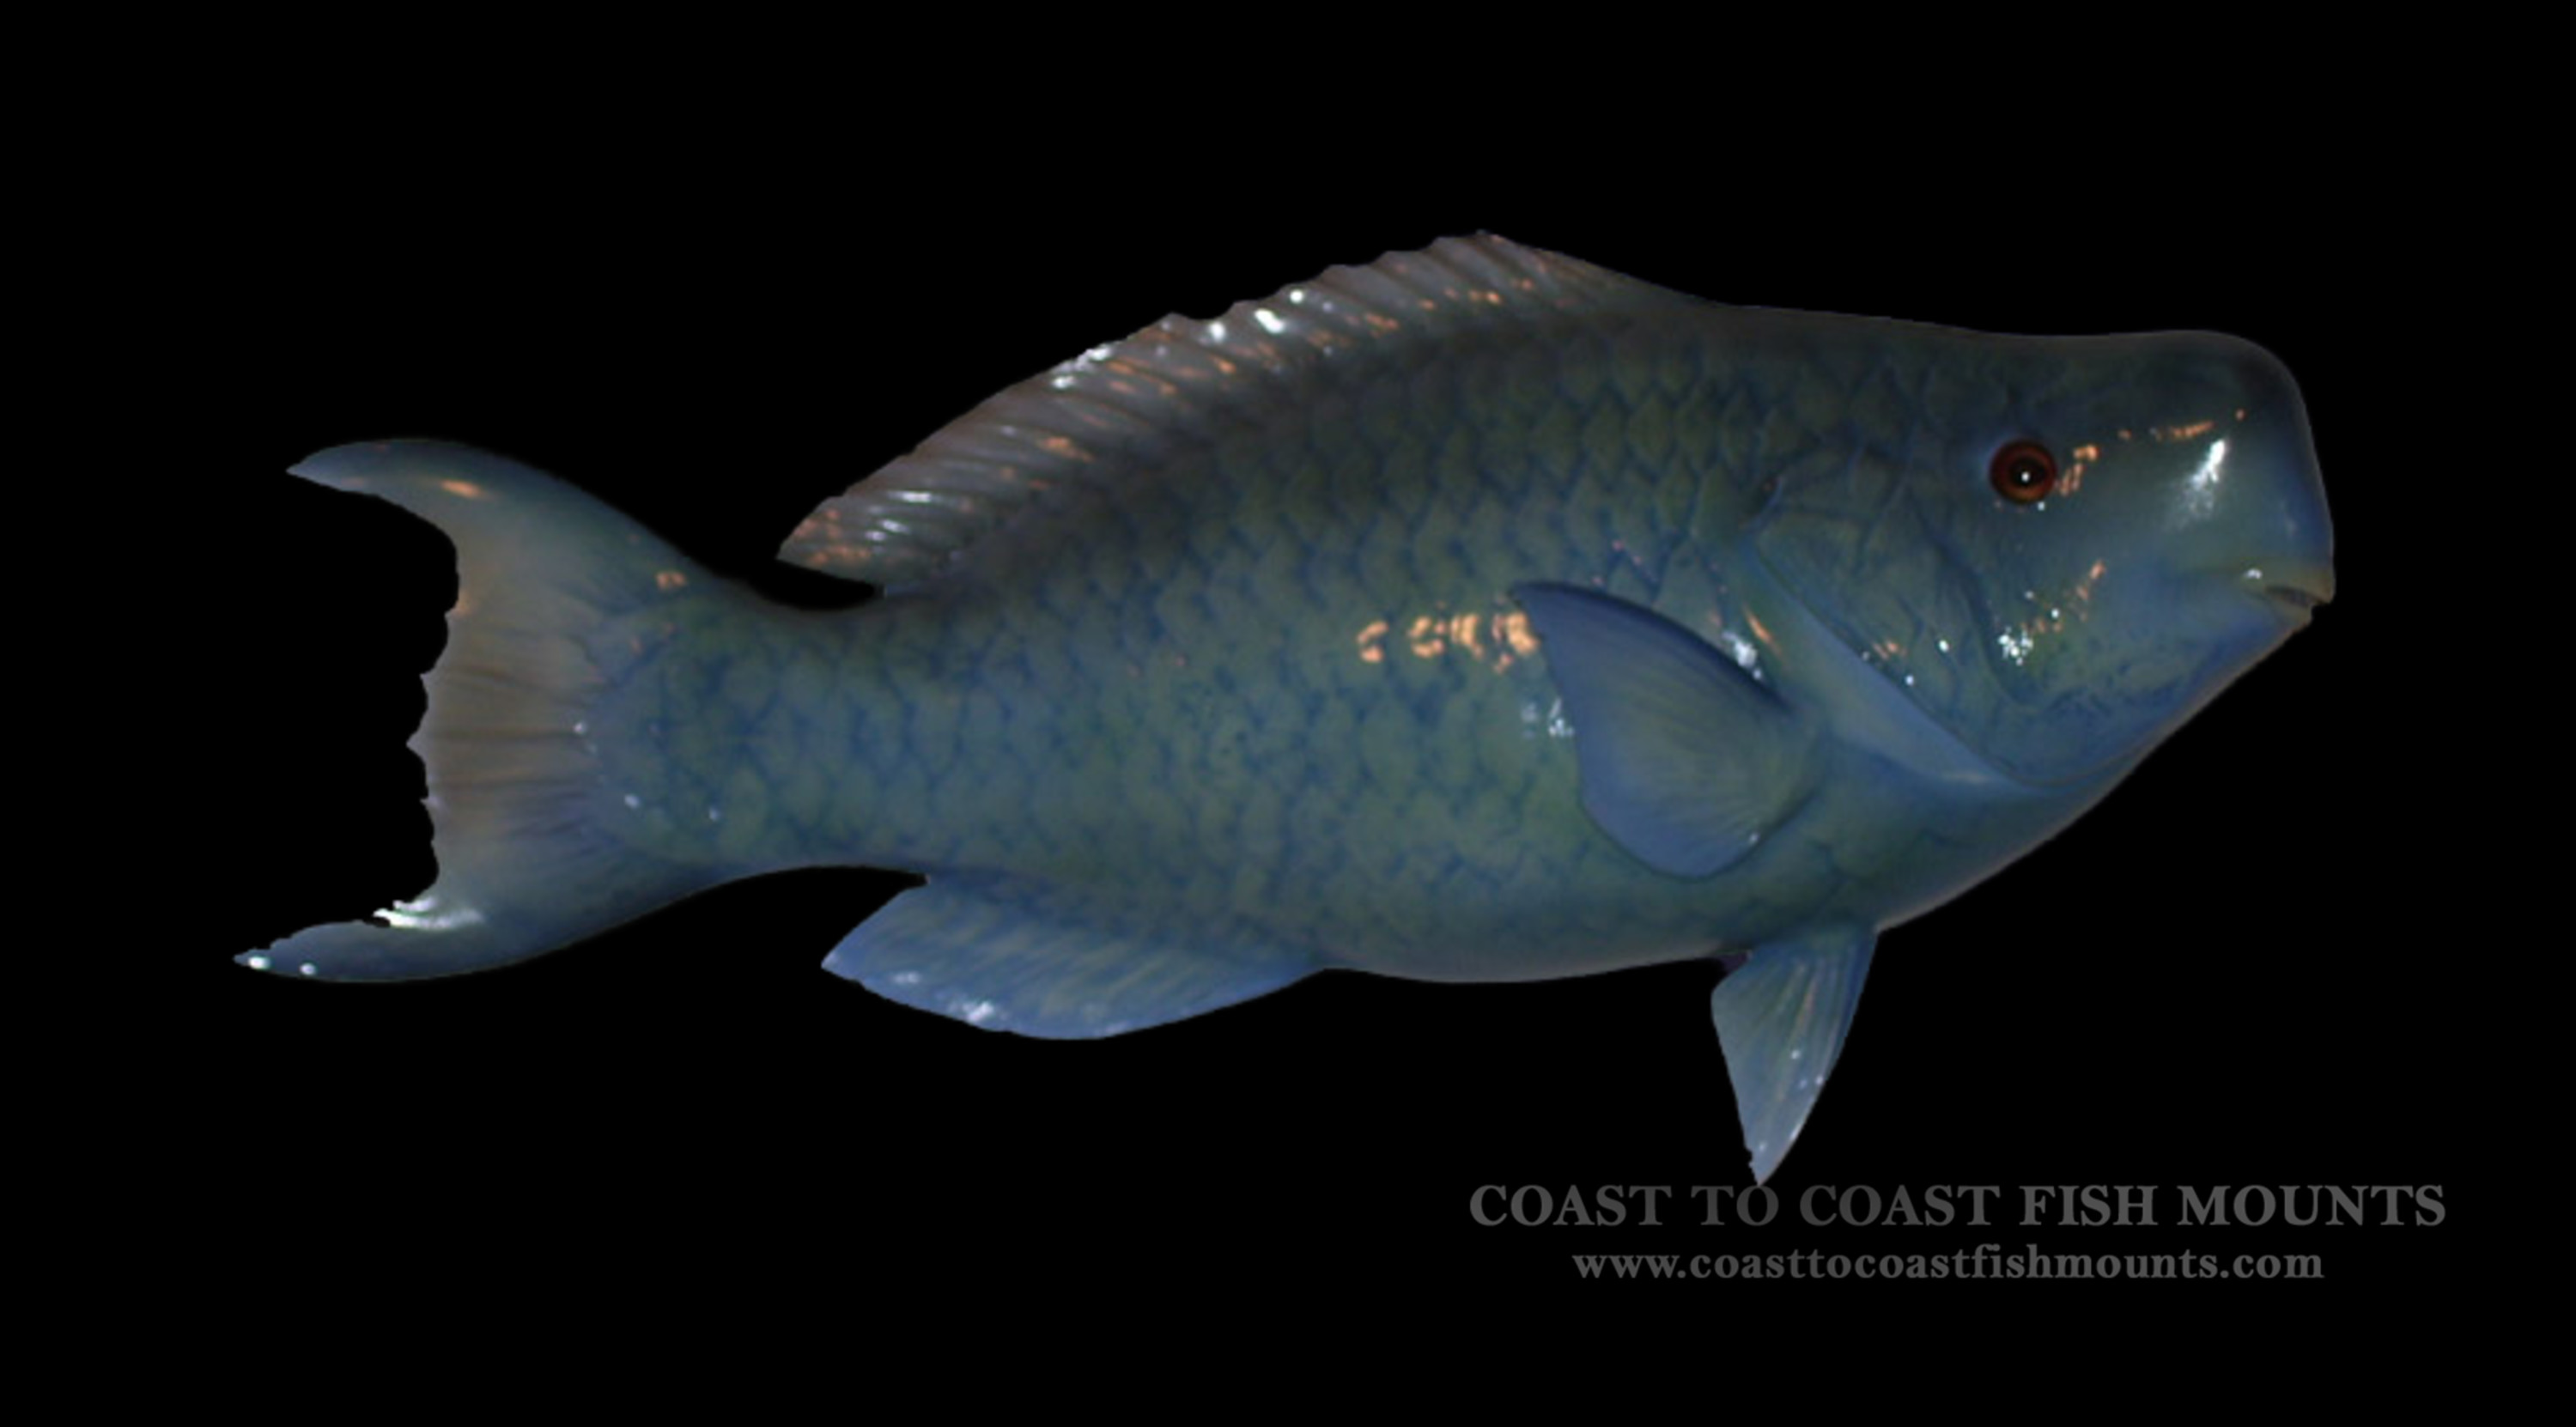 Blue parrot fish fish mount and fish replicas coast to coast for Blue parrot fish